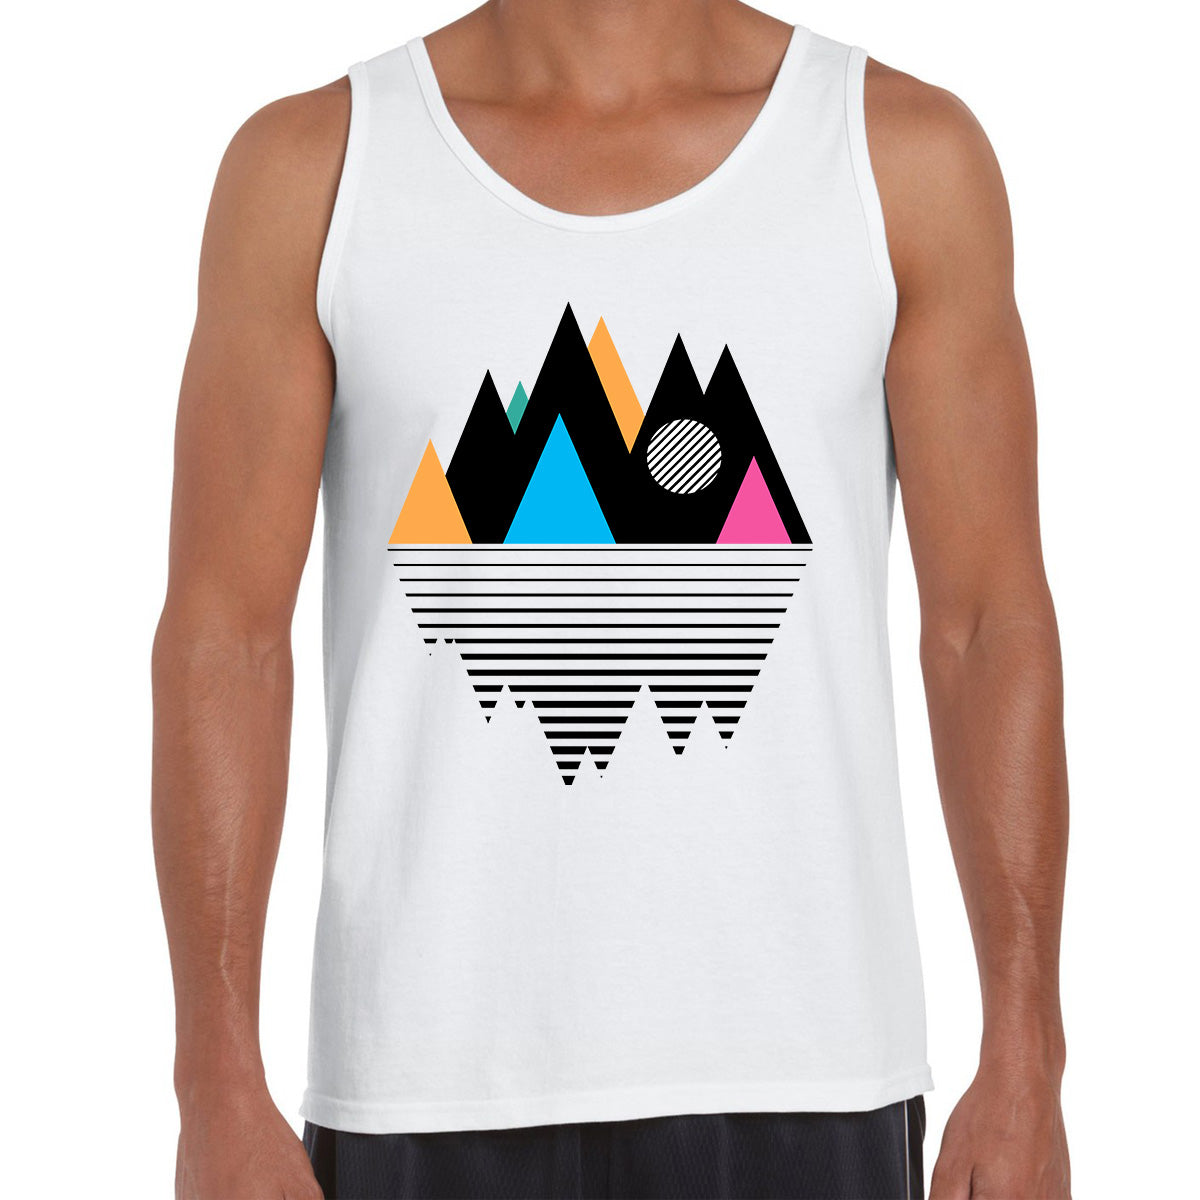 Mountain Geometry Minimal Design White Tank Top Composition